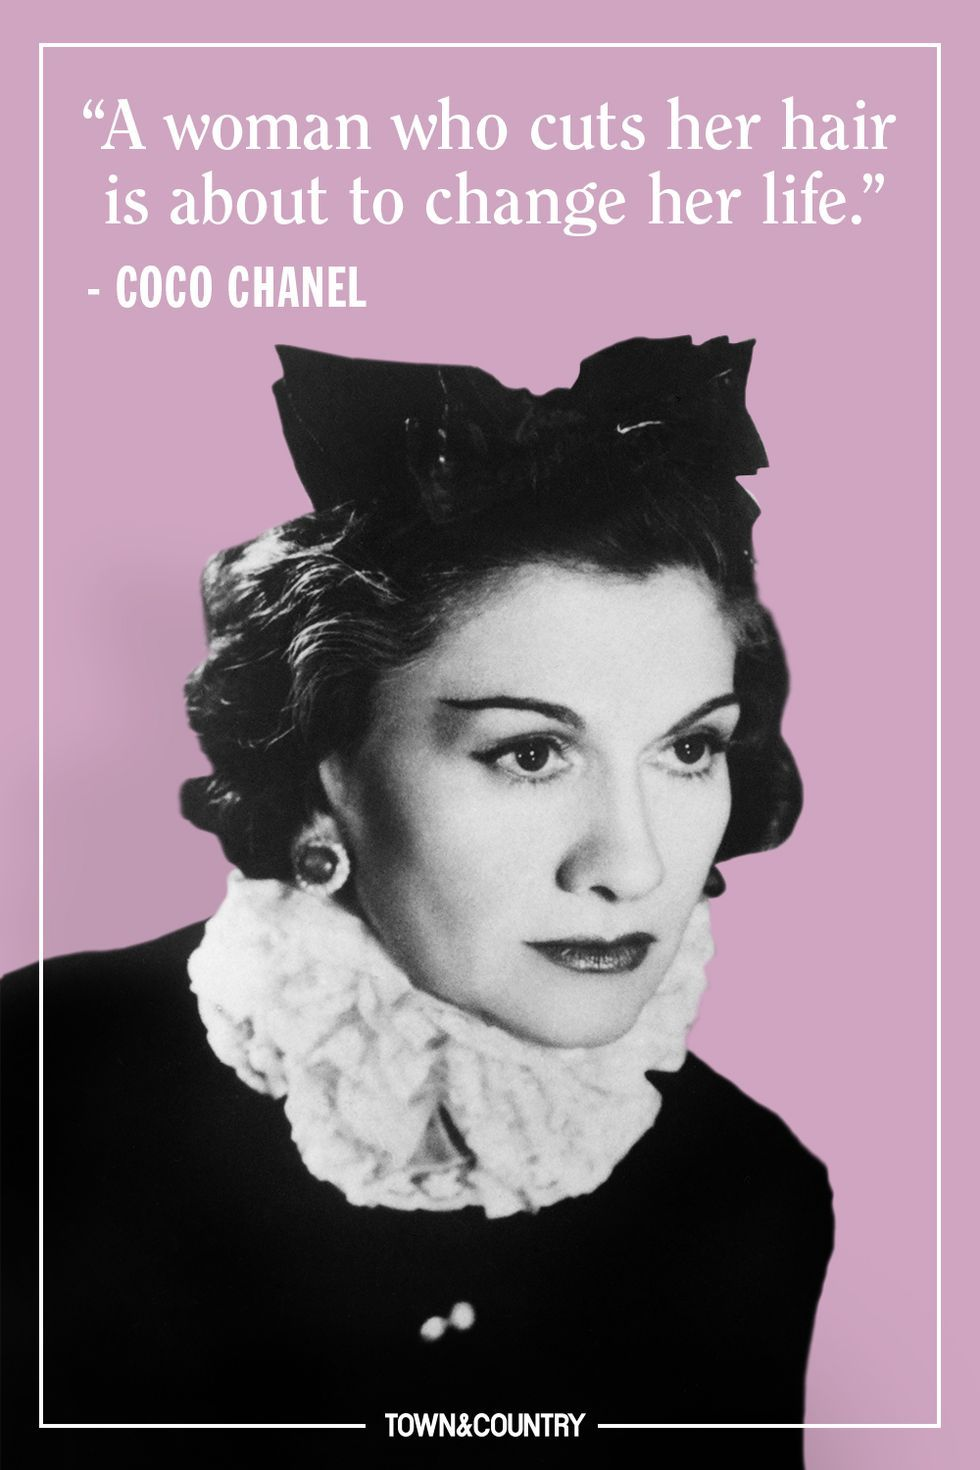 a38331d82954 25 Coco Chanel Quotes Every Woman Should Live By - Best Coco Chanel Sayings